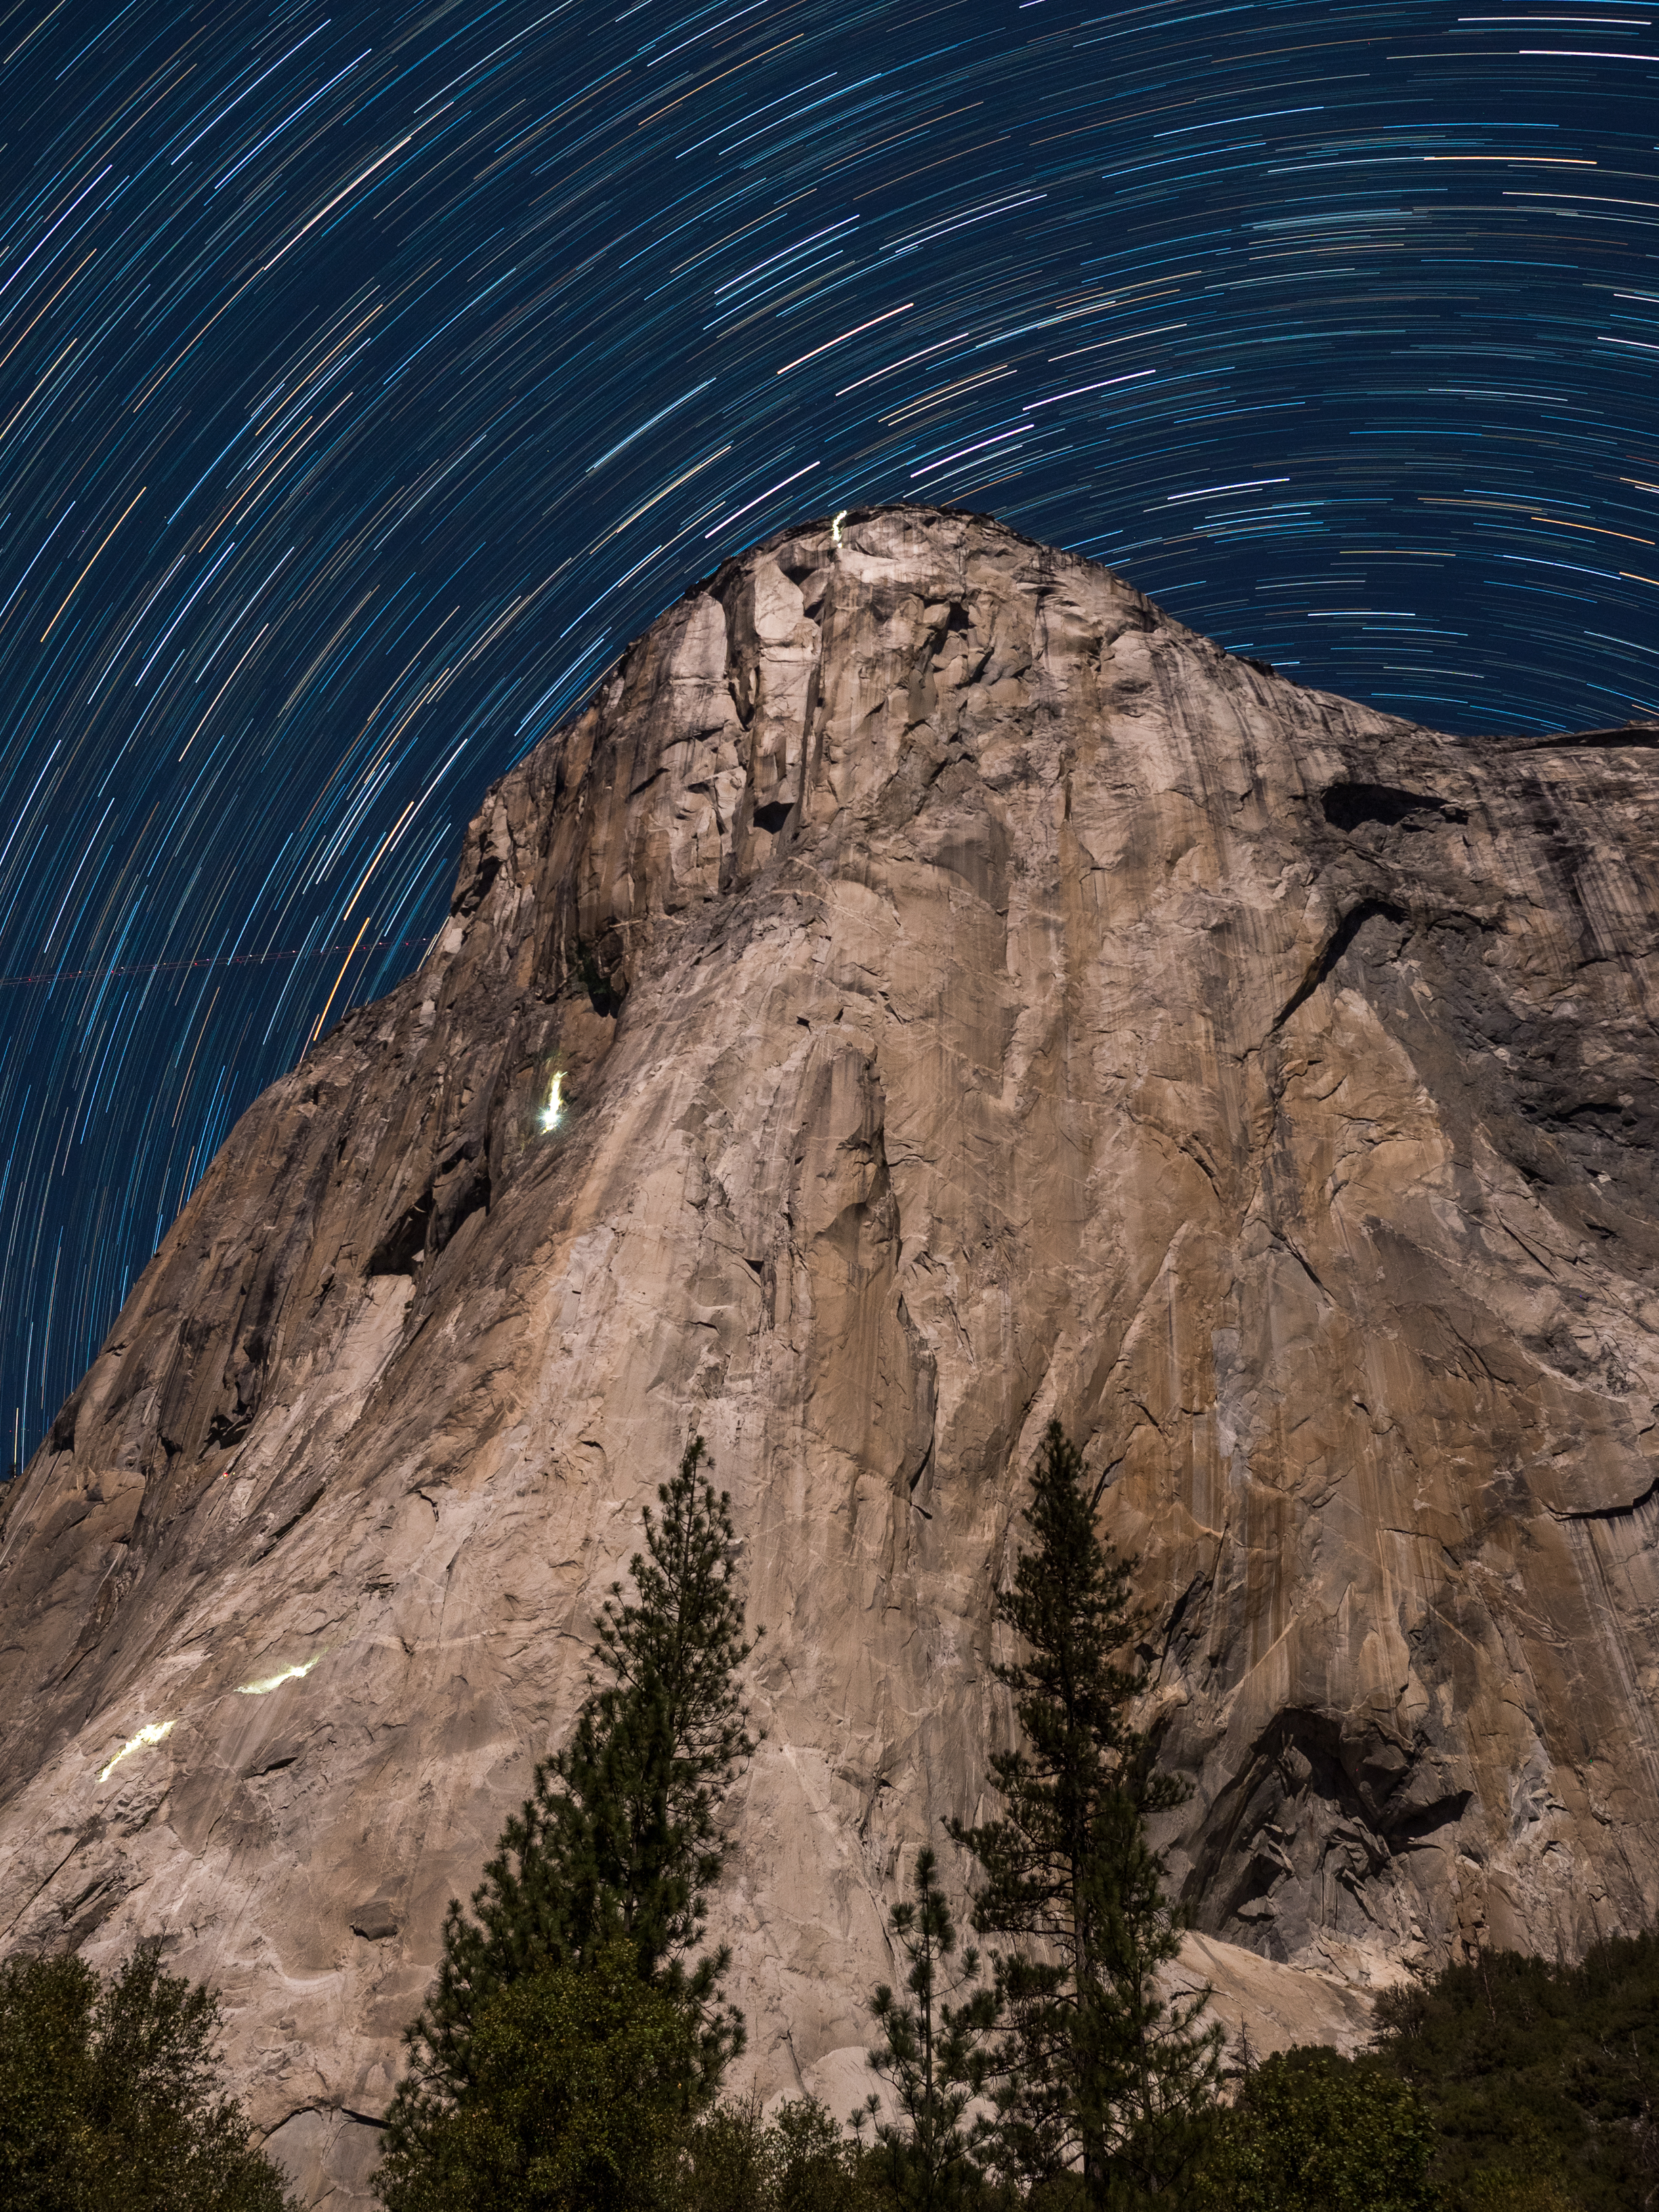 Star trails and night-time rock climbers on El Capitan in November 2019